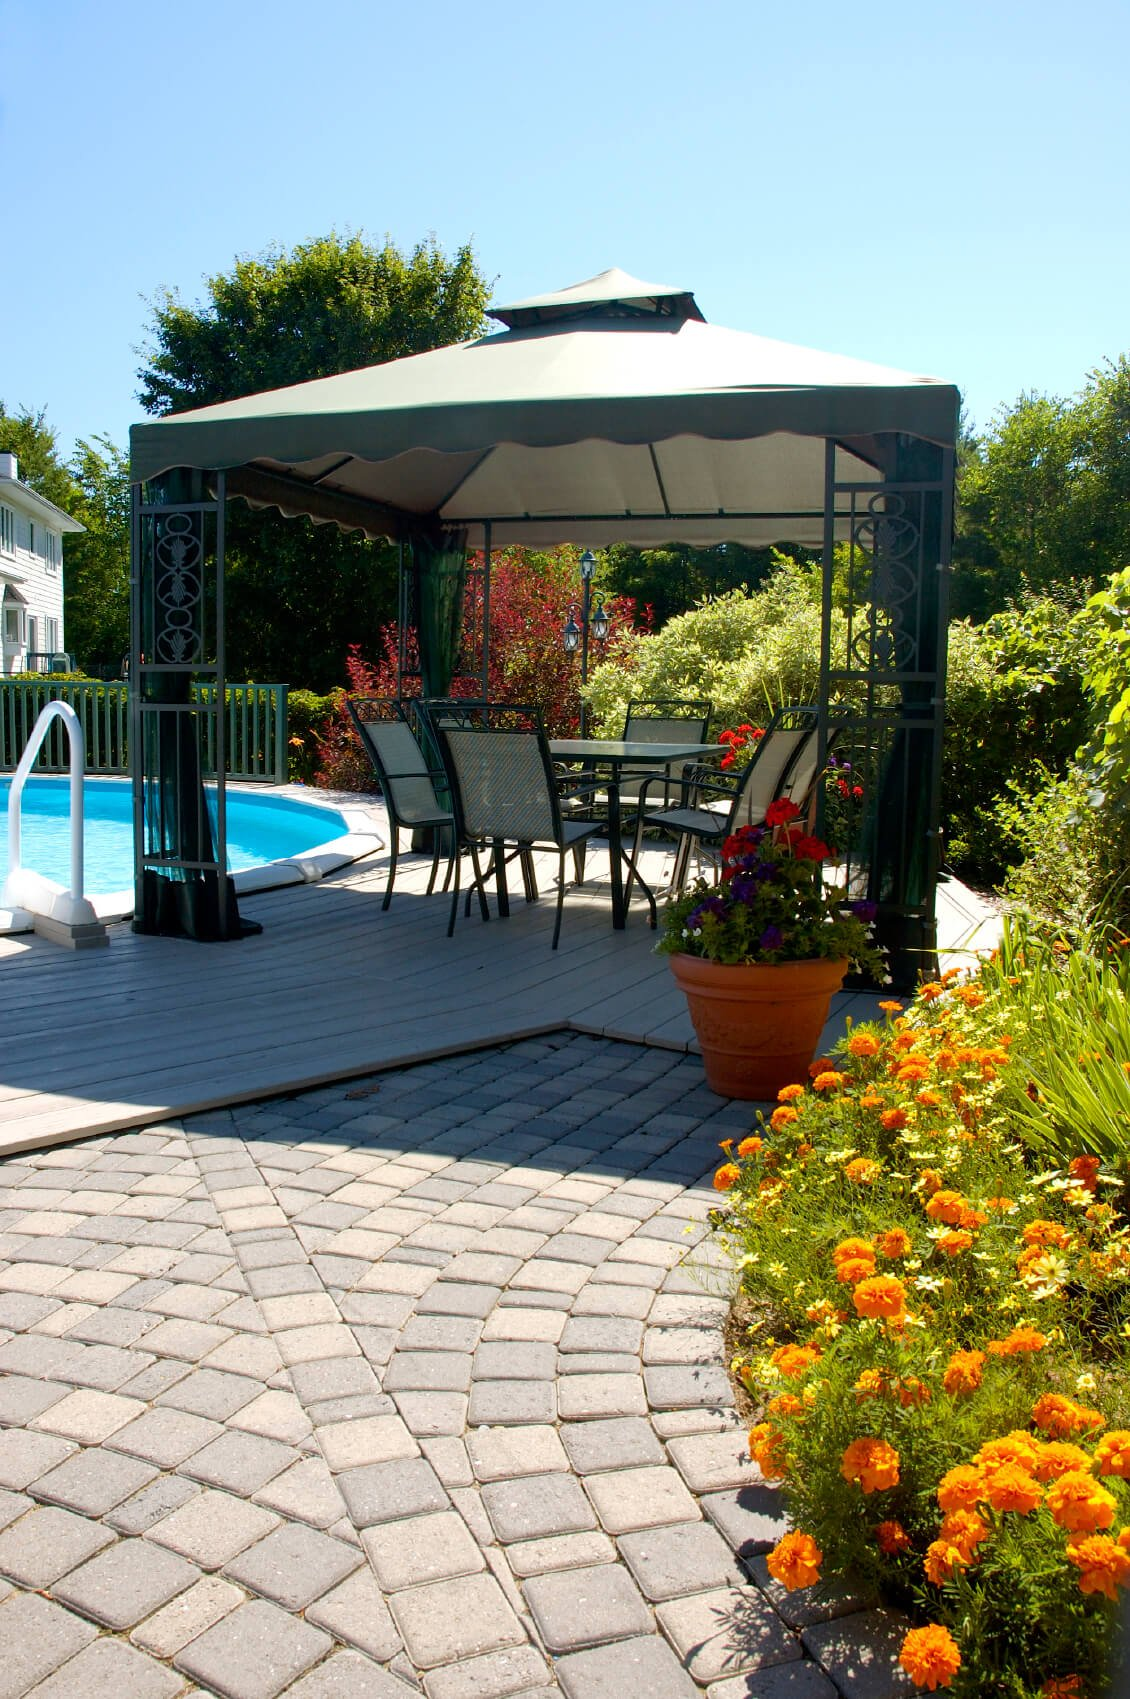 This cloth top gazebo is set up on the side of the pool, providing a shady spot for a relaxing gathering. What better on a sunny day than sitting poolside with your friends?